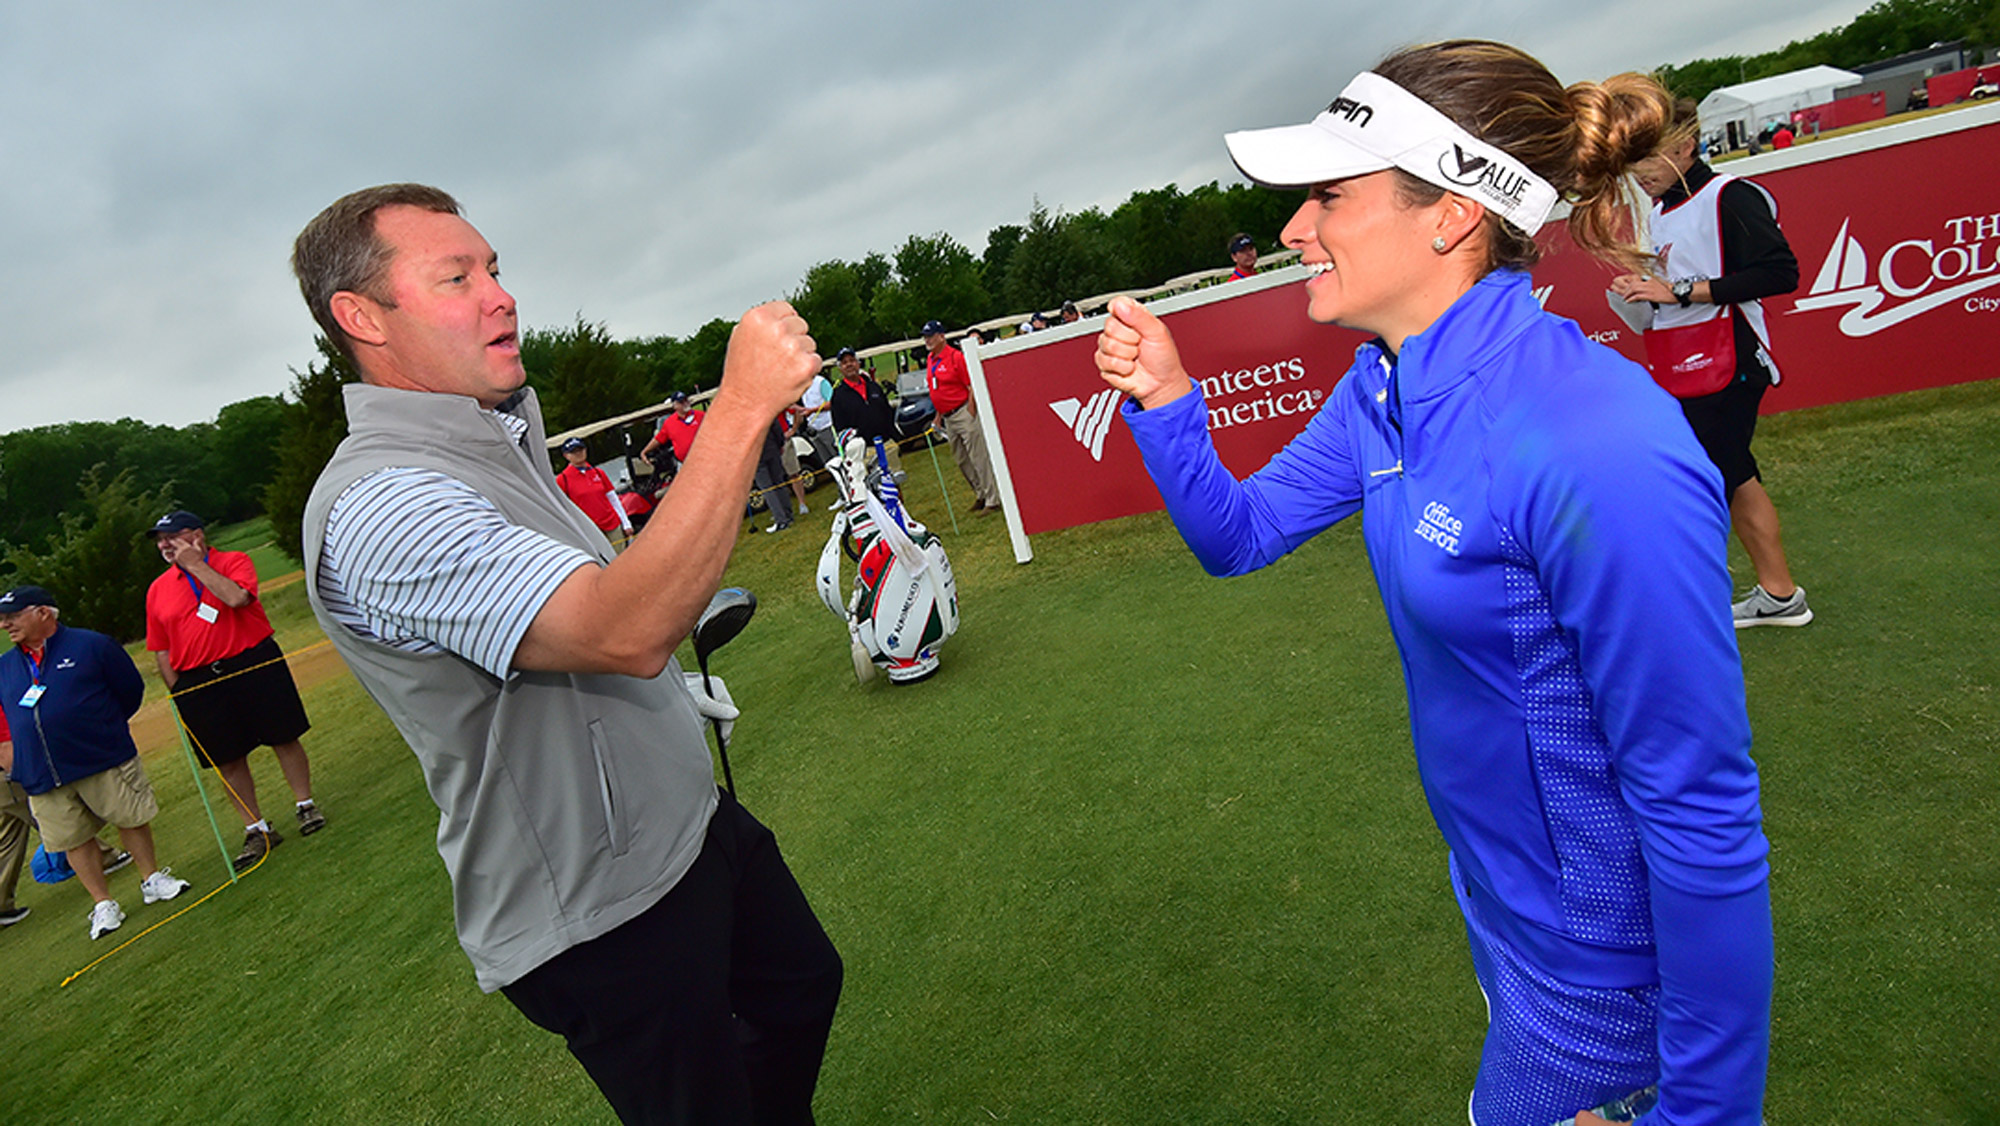 Gaby Lopez Says Hello to Mike Whan at the VOA LPGA Texas Classic